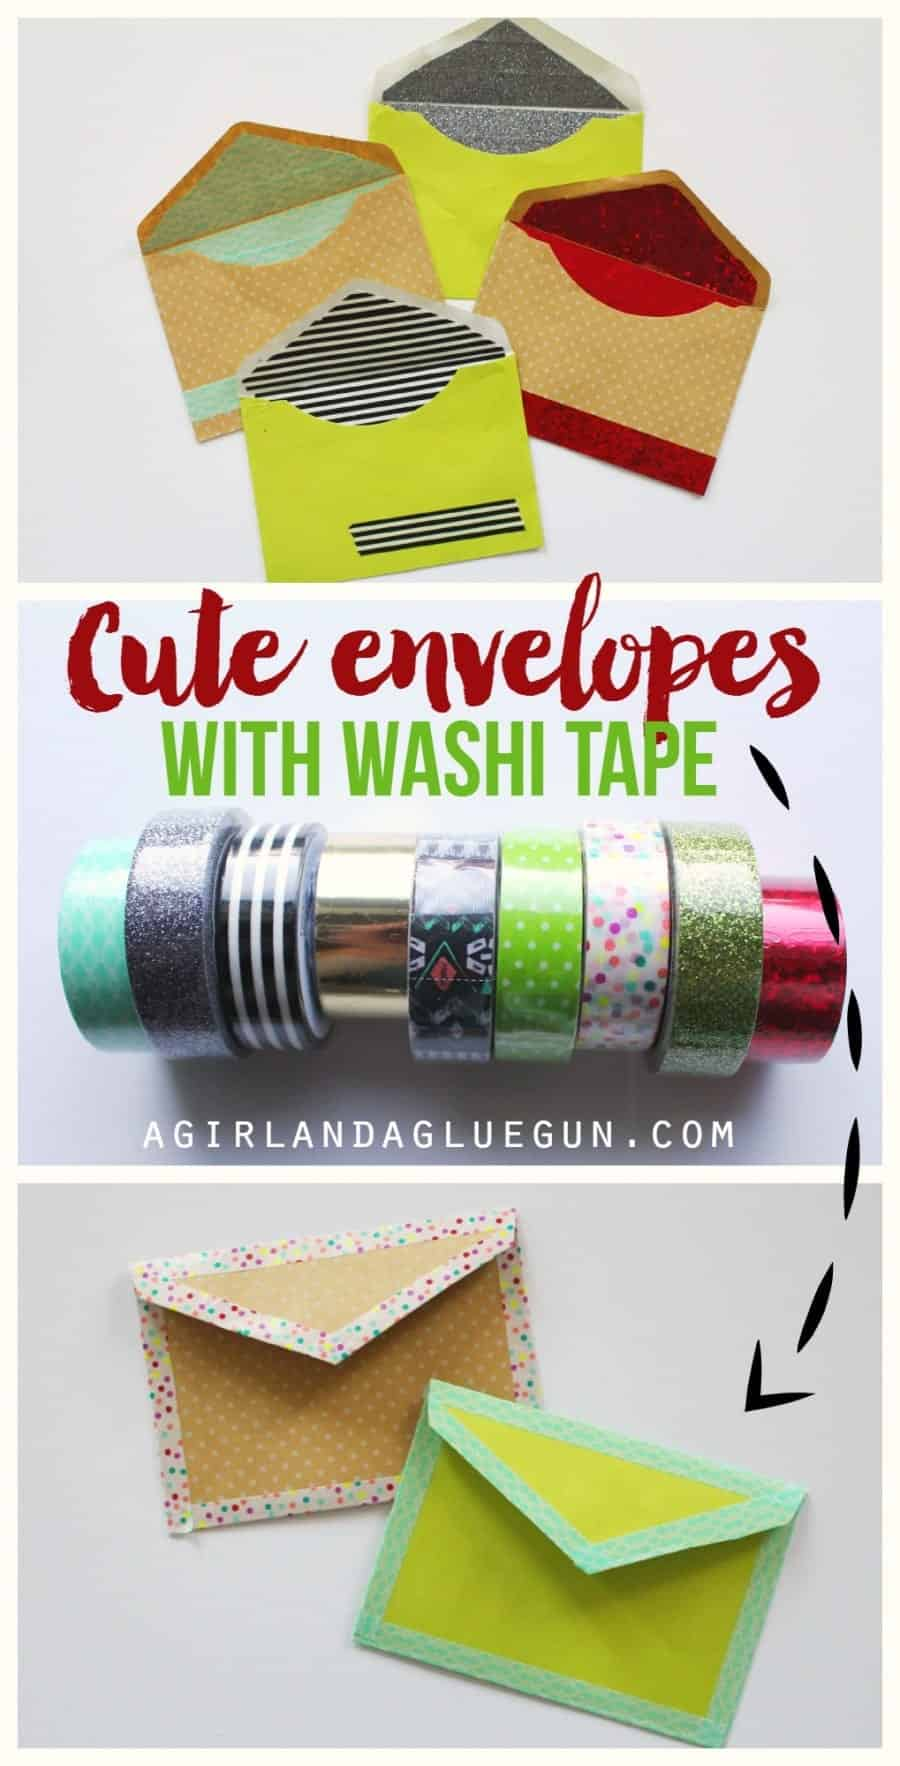 make adorable envelopes with washi tape